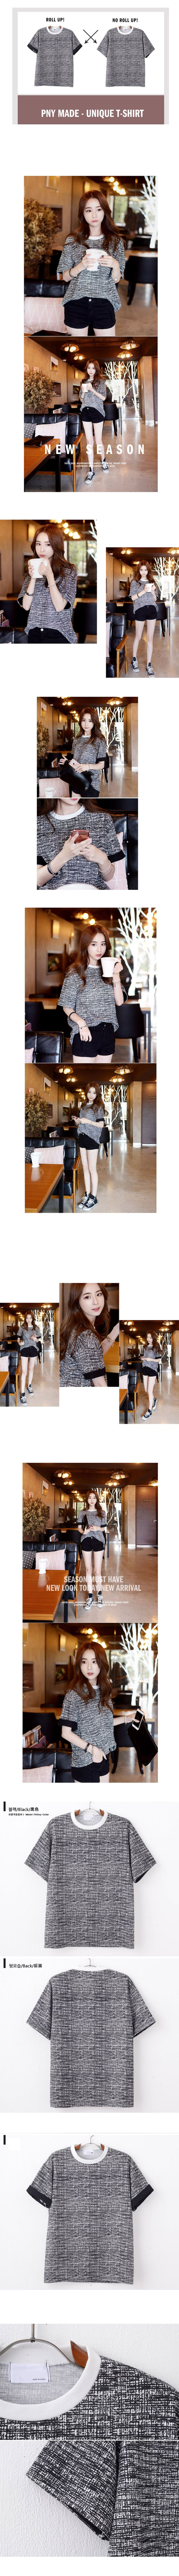 Korean Fashion Online Store 韓流 Trends Luxe Asian Women 韓国 Style Shop korean clothing Old memories Top